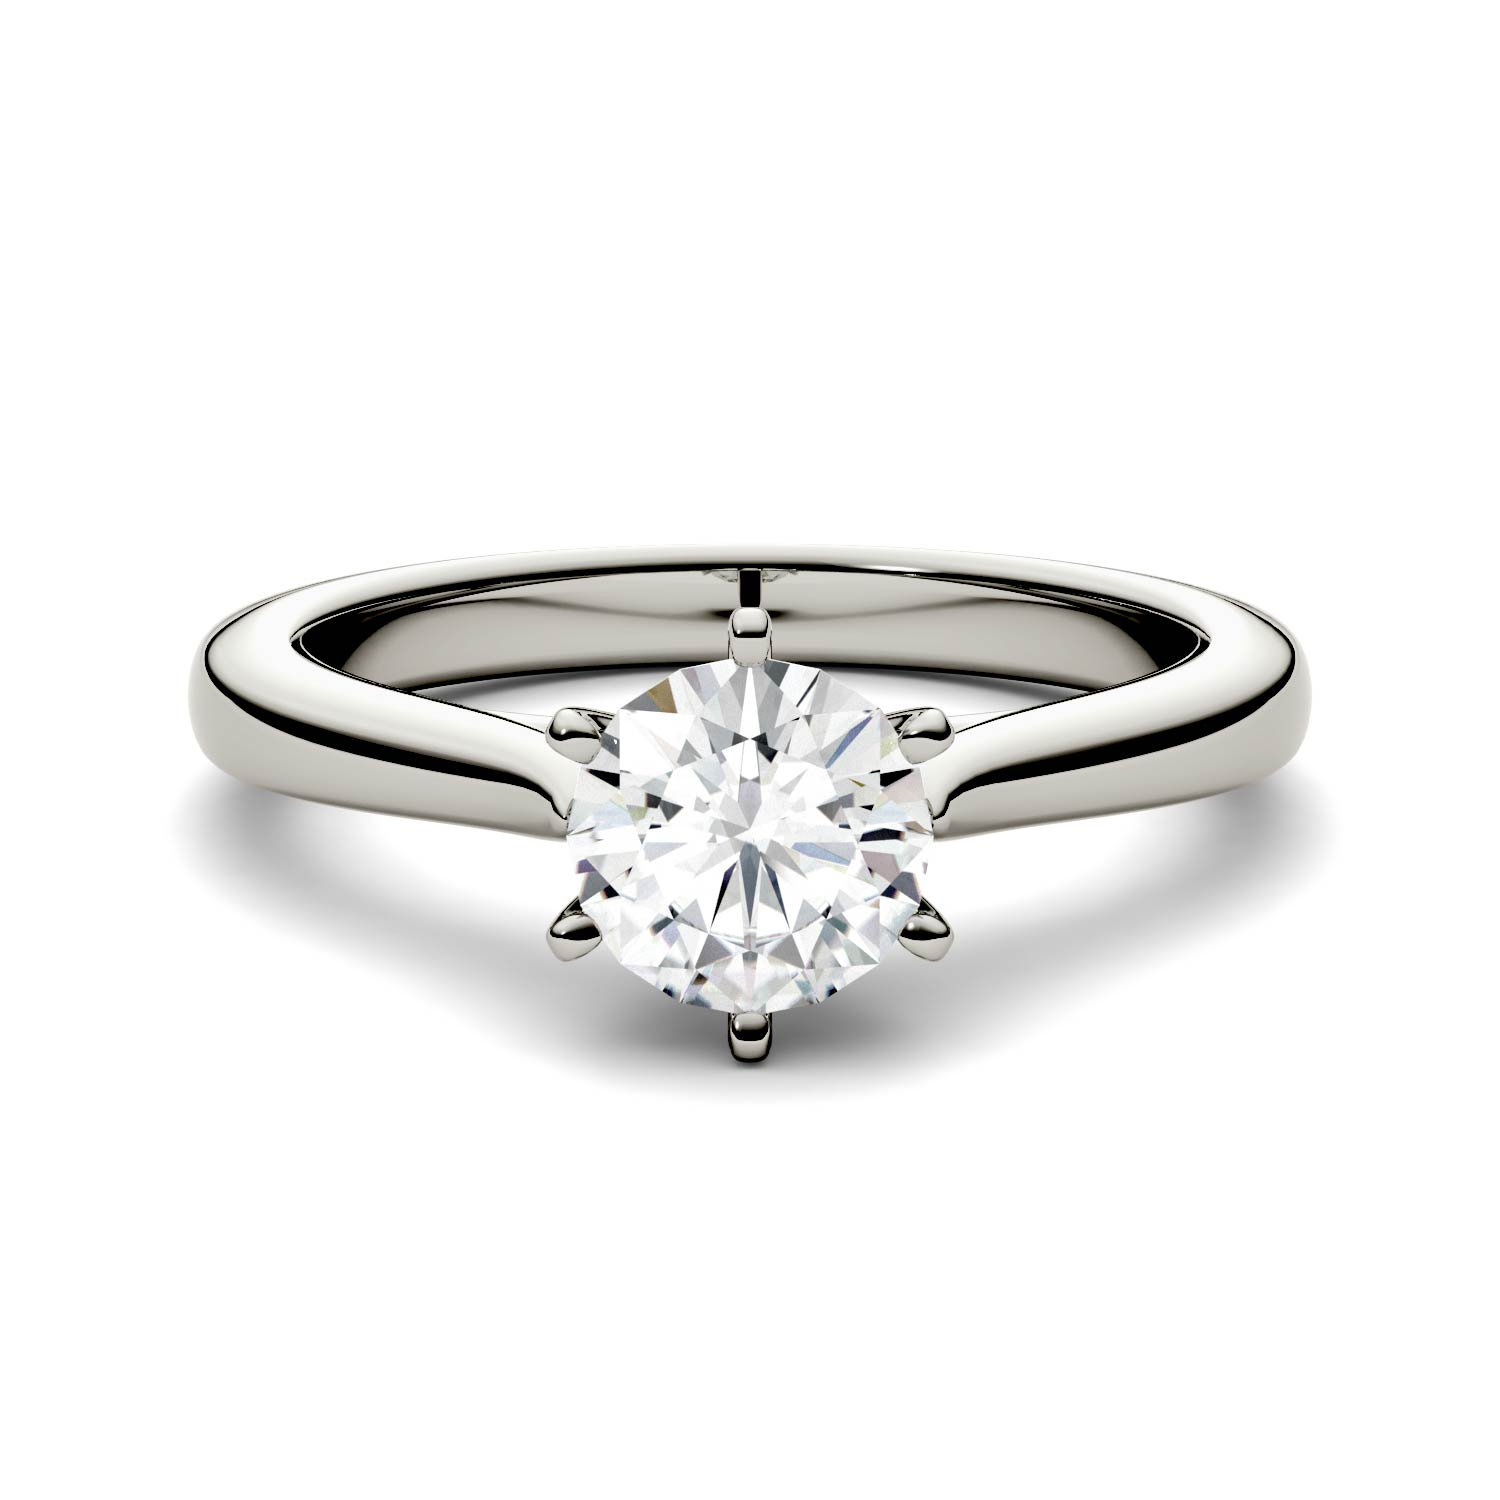 Forever One Round 5.0mm Moissanite Engagement Ring-size 6, 0.50ct DEW (G-H-I) By Charles & Colvard